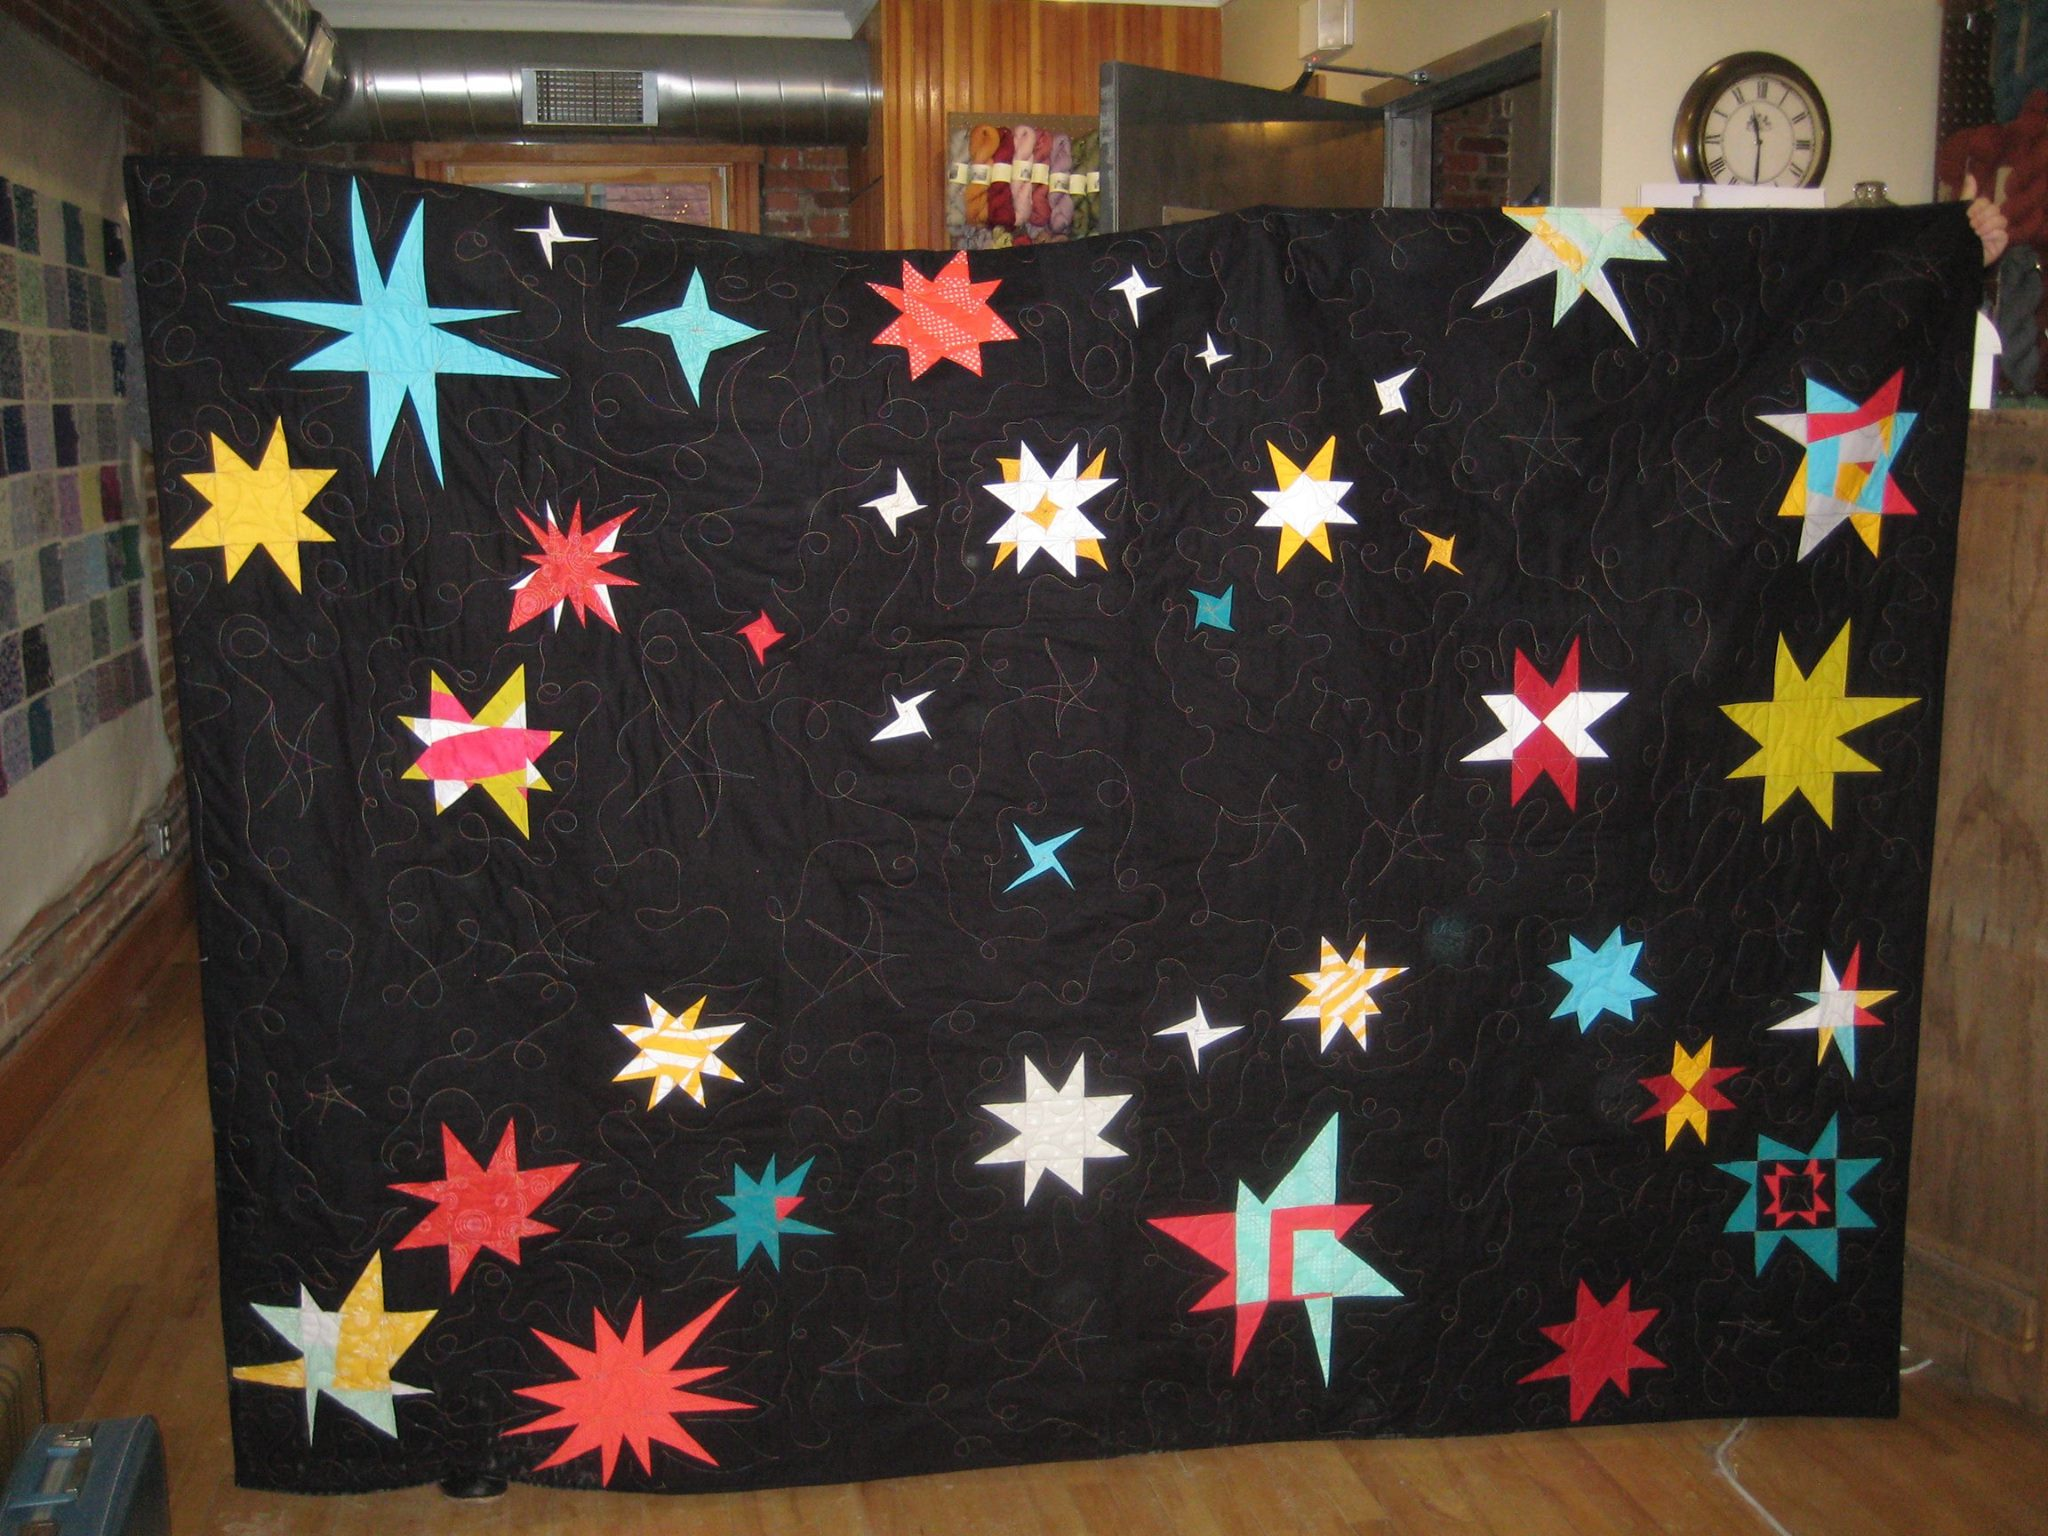 Our charity quilt with beautiful custom quilting by Marty!